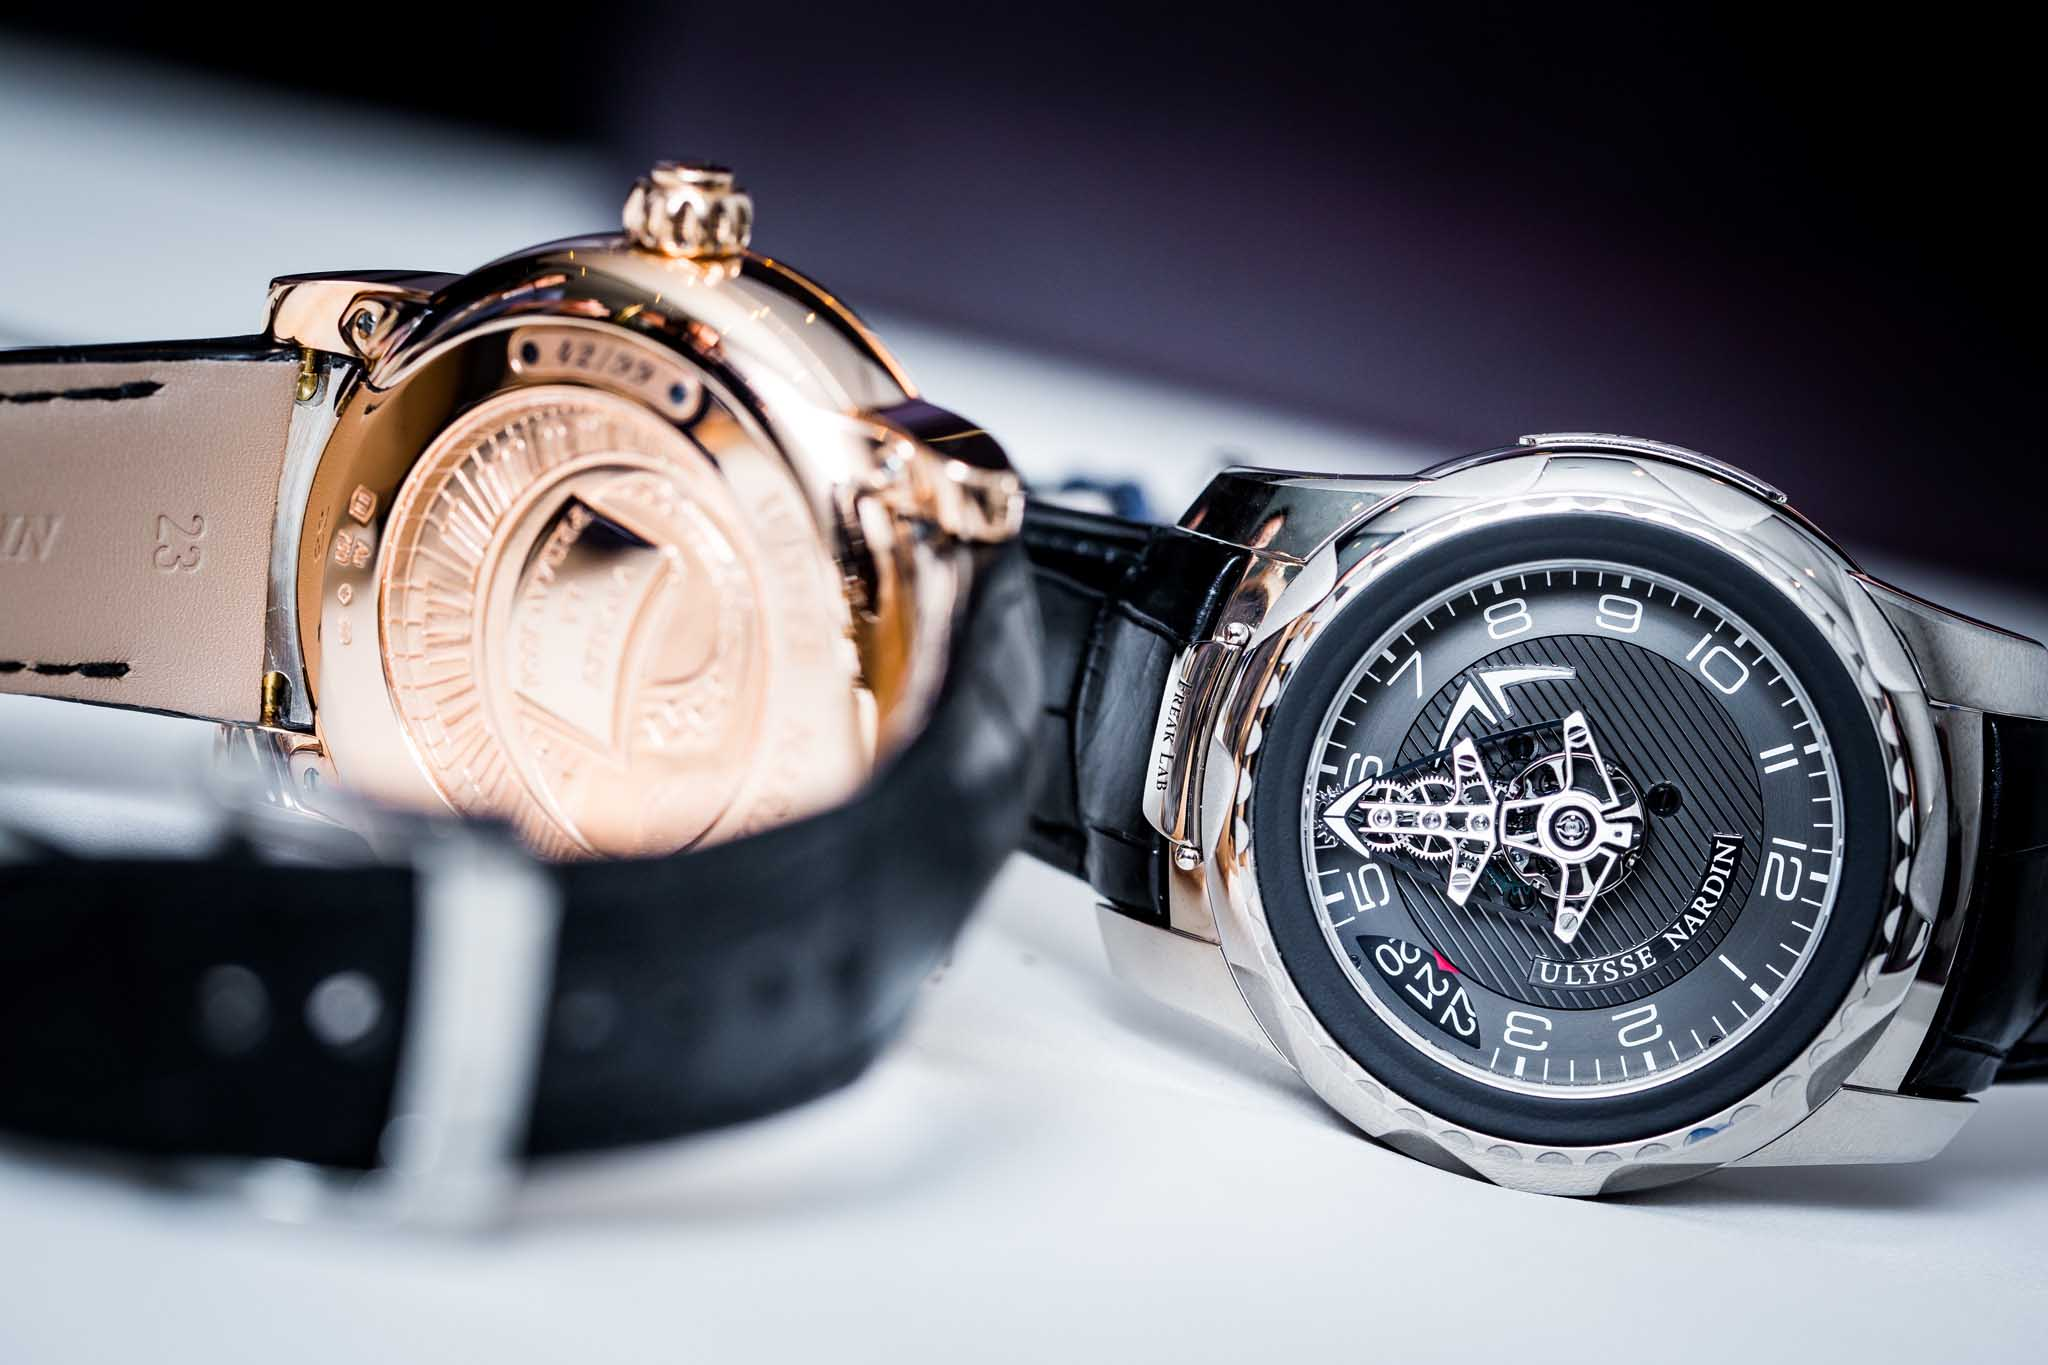 ulysse nardin watch review мало